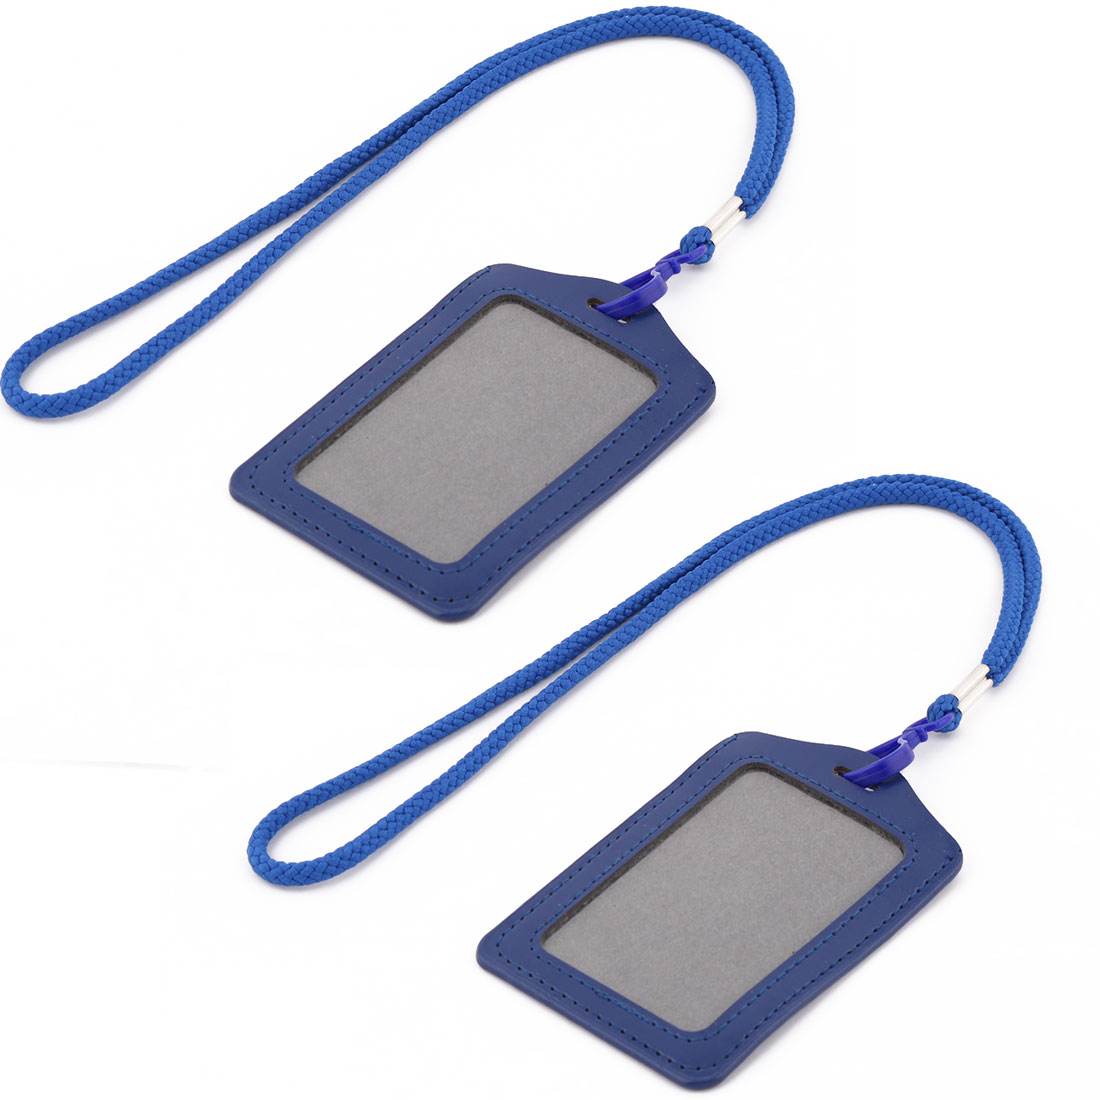 Faux Leather Vertical Style ID Name Card Tag Badge Holder Carrier Navy Blue 2pcs w Lanyard